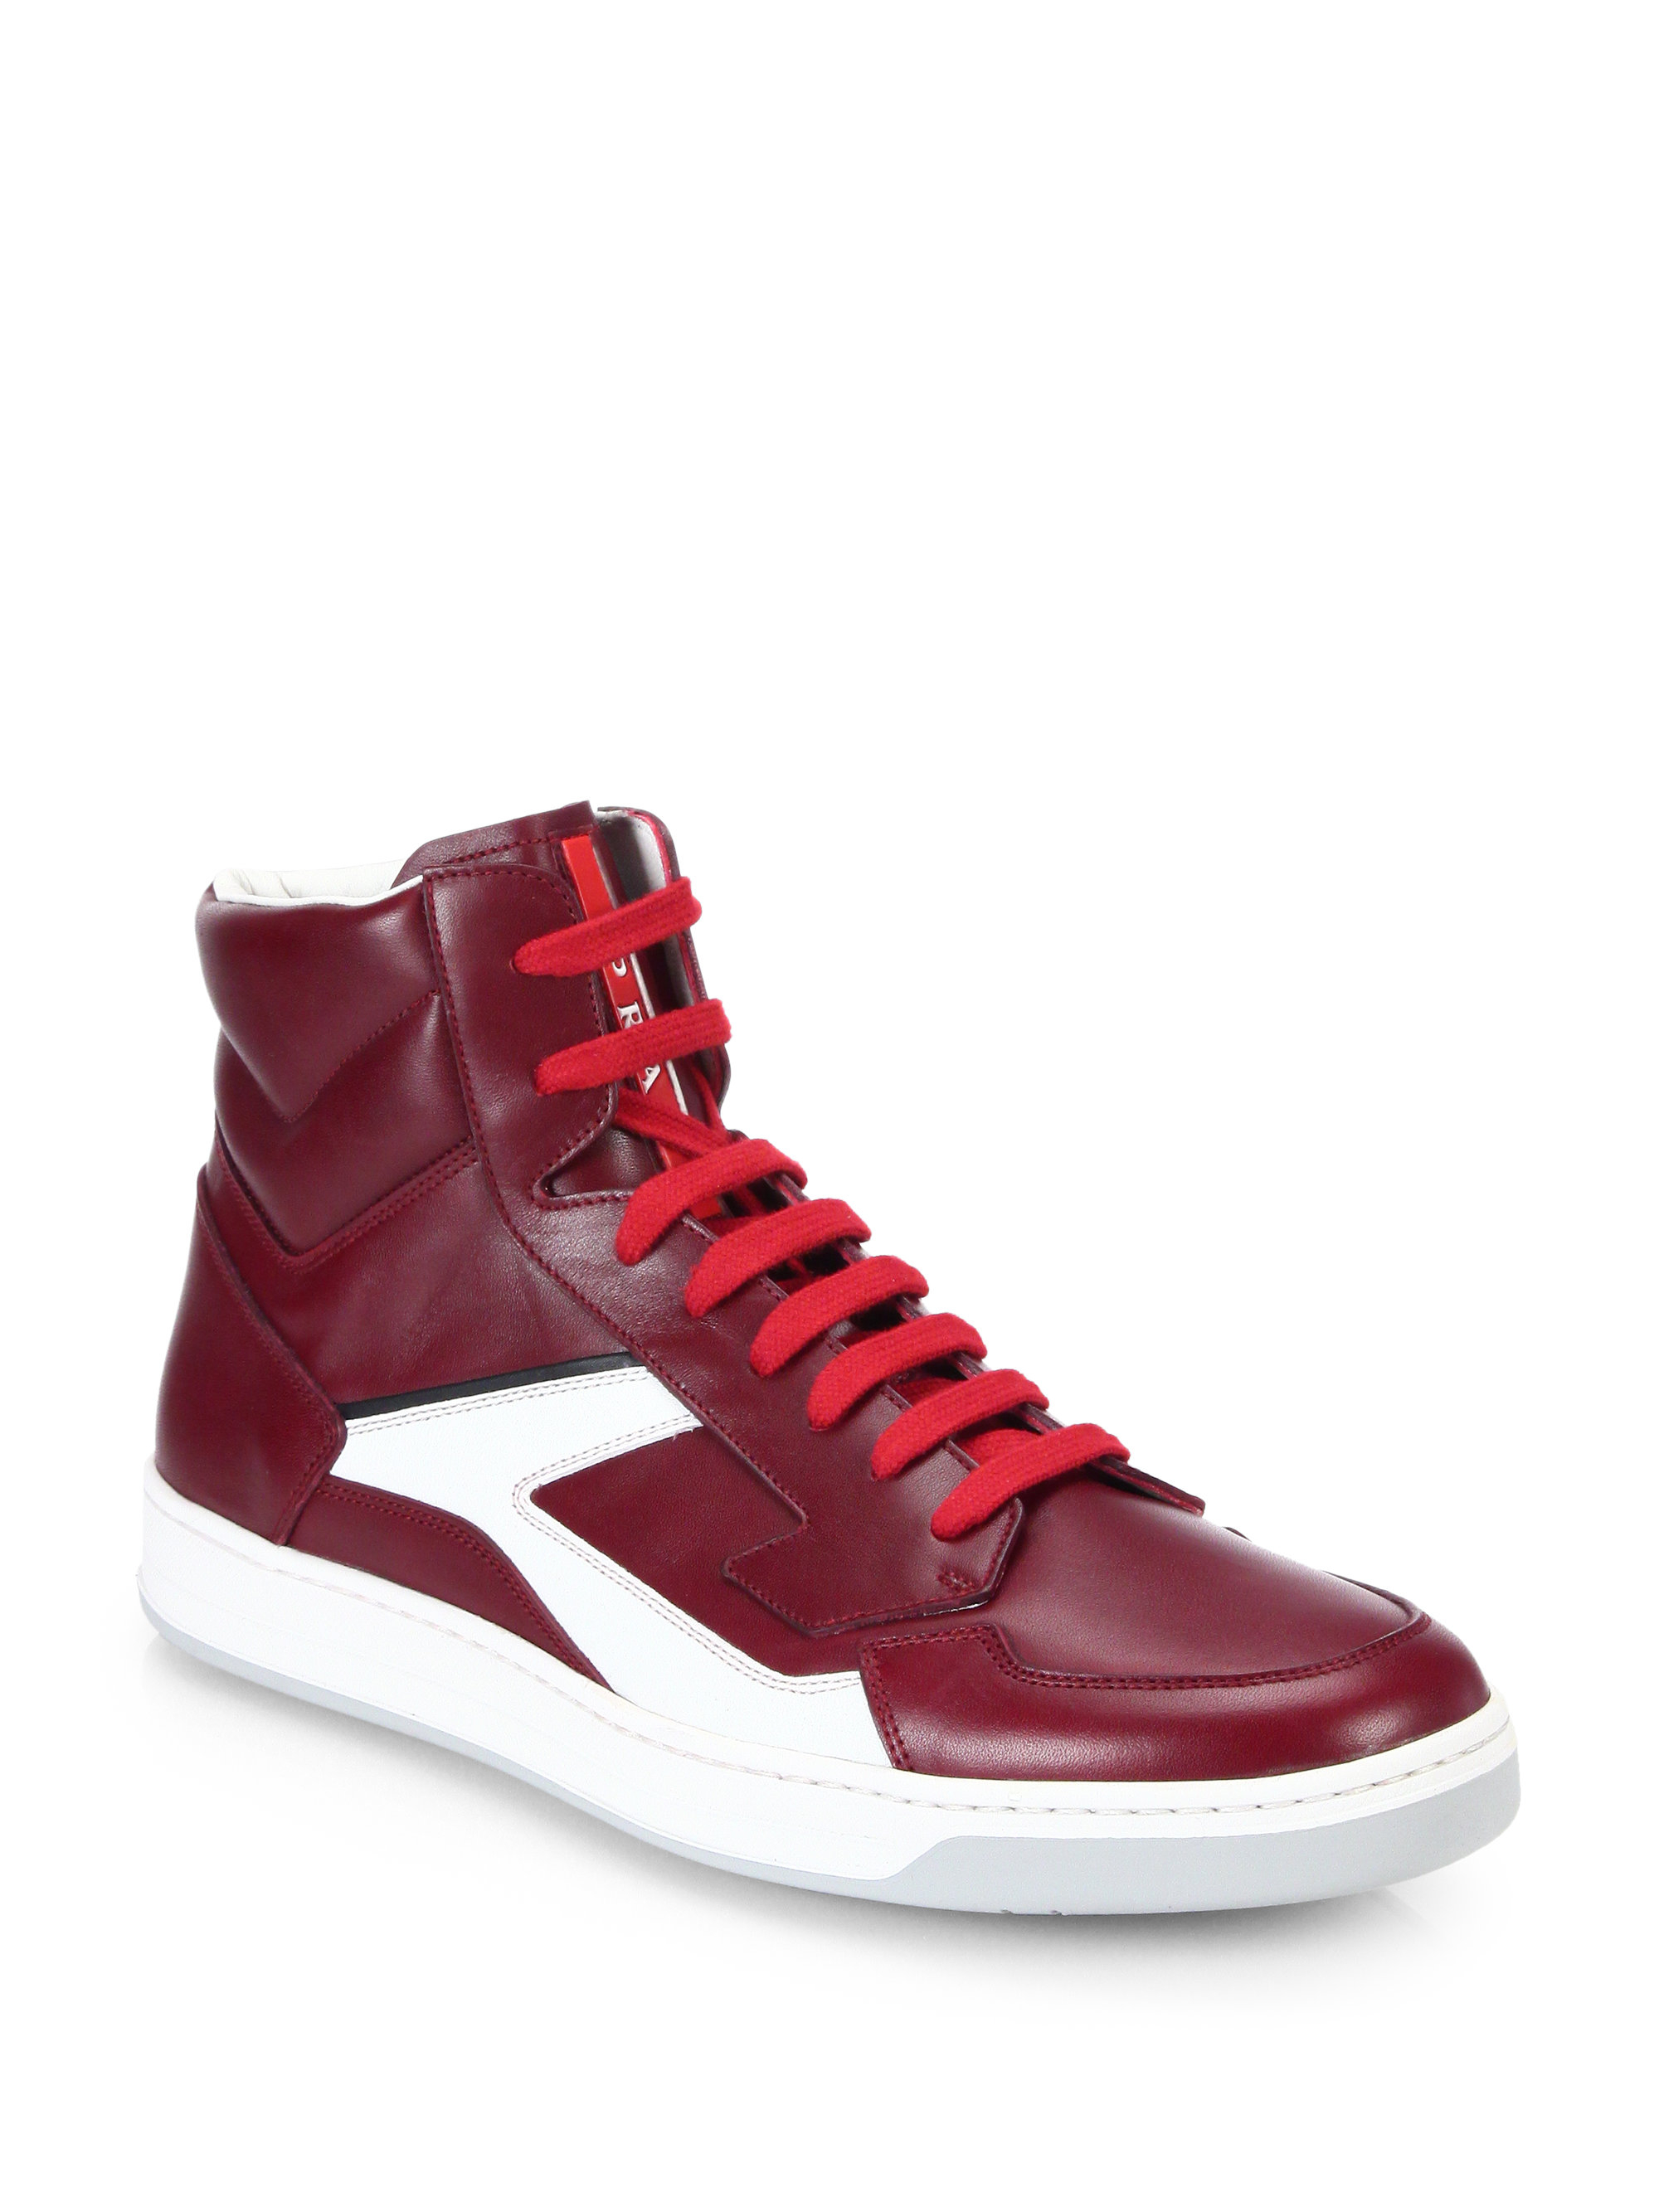 Prada Leather High-top Sneakers in Red for Men | Lyst